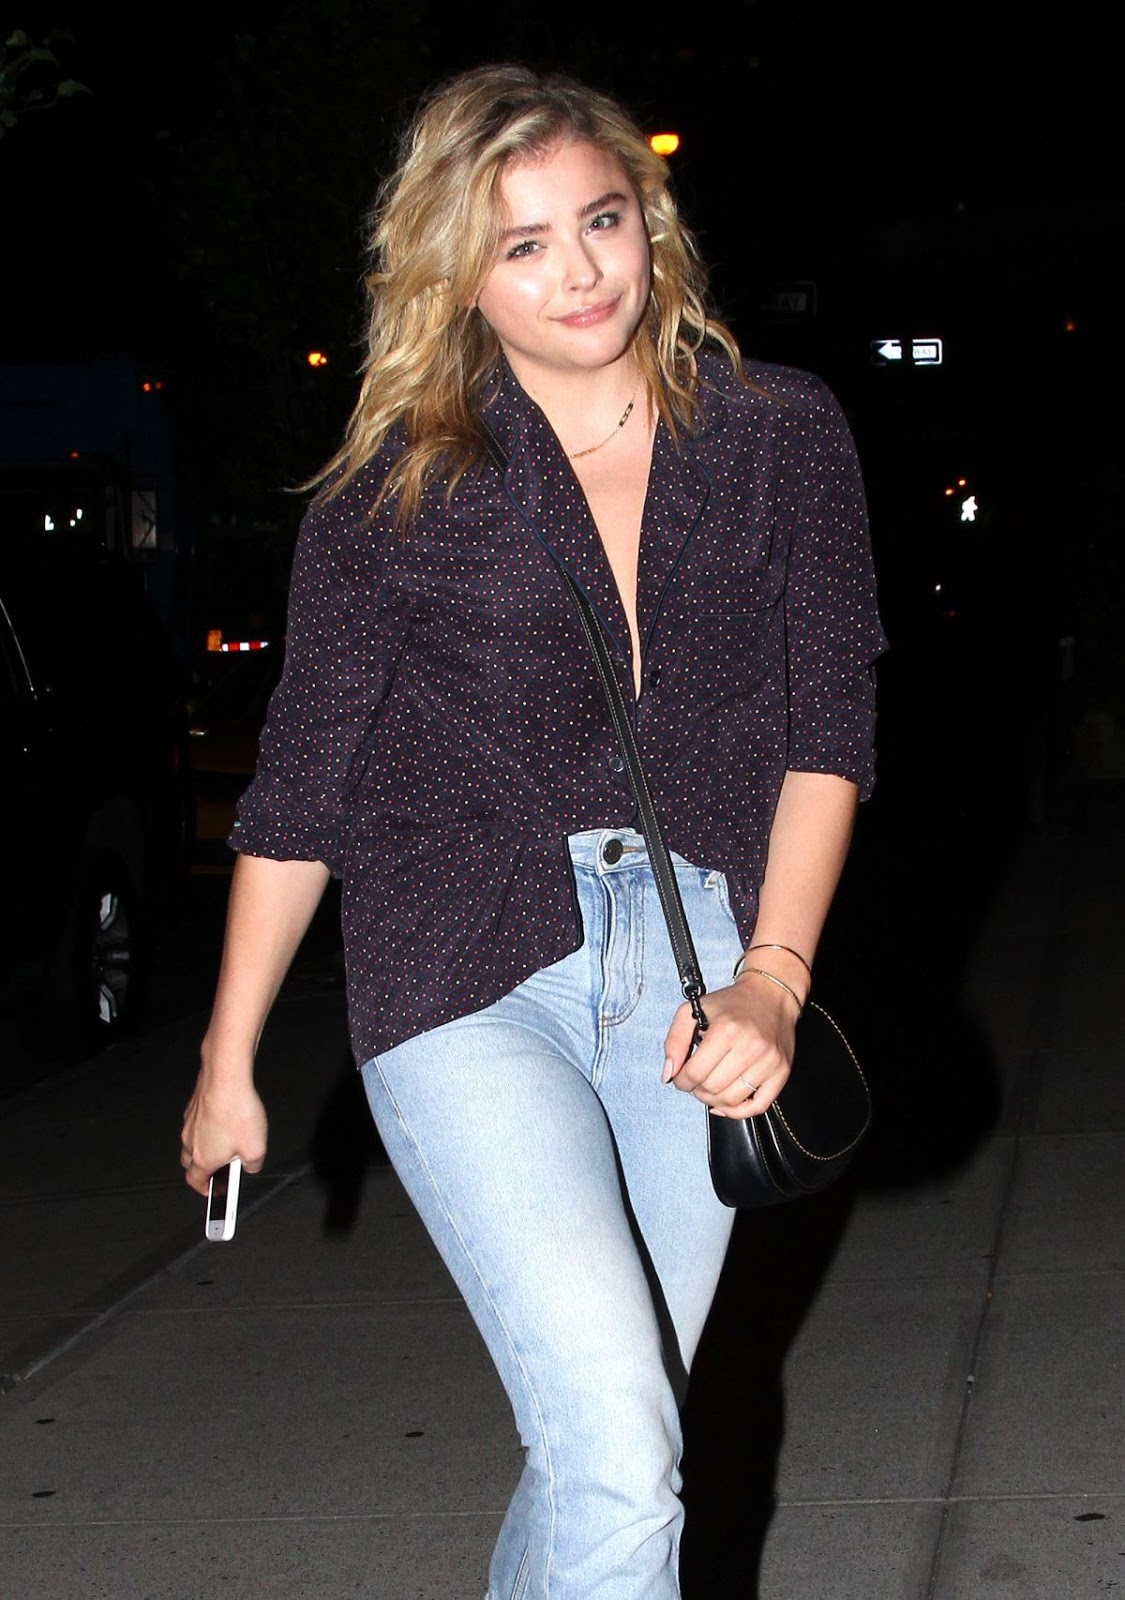 Photos of Chloe Grace Moretz Night Out In New York